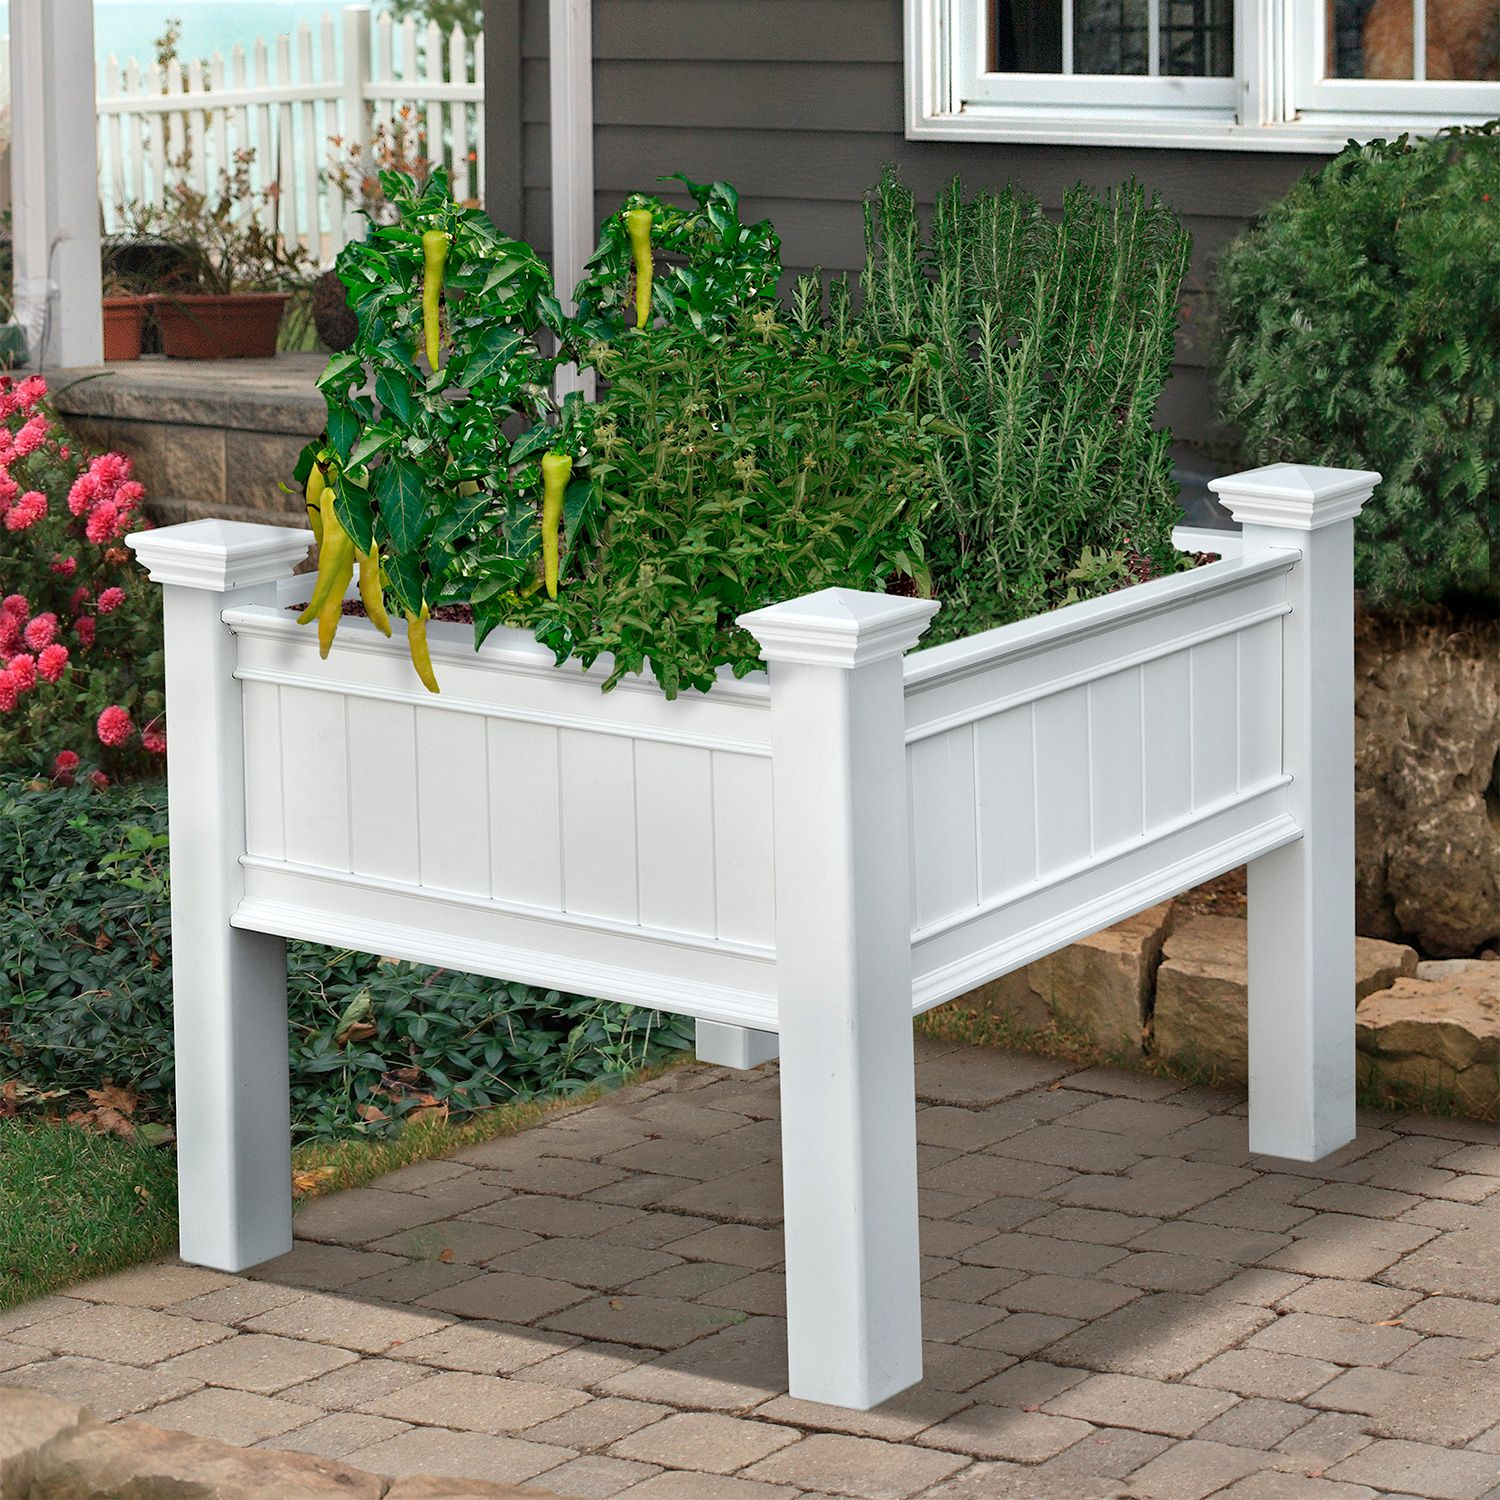 Mayfair 3 ft. x 3 ft. Raised Planter